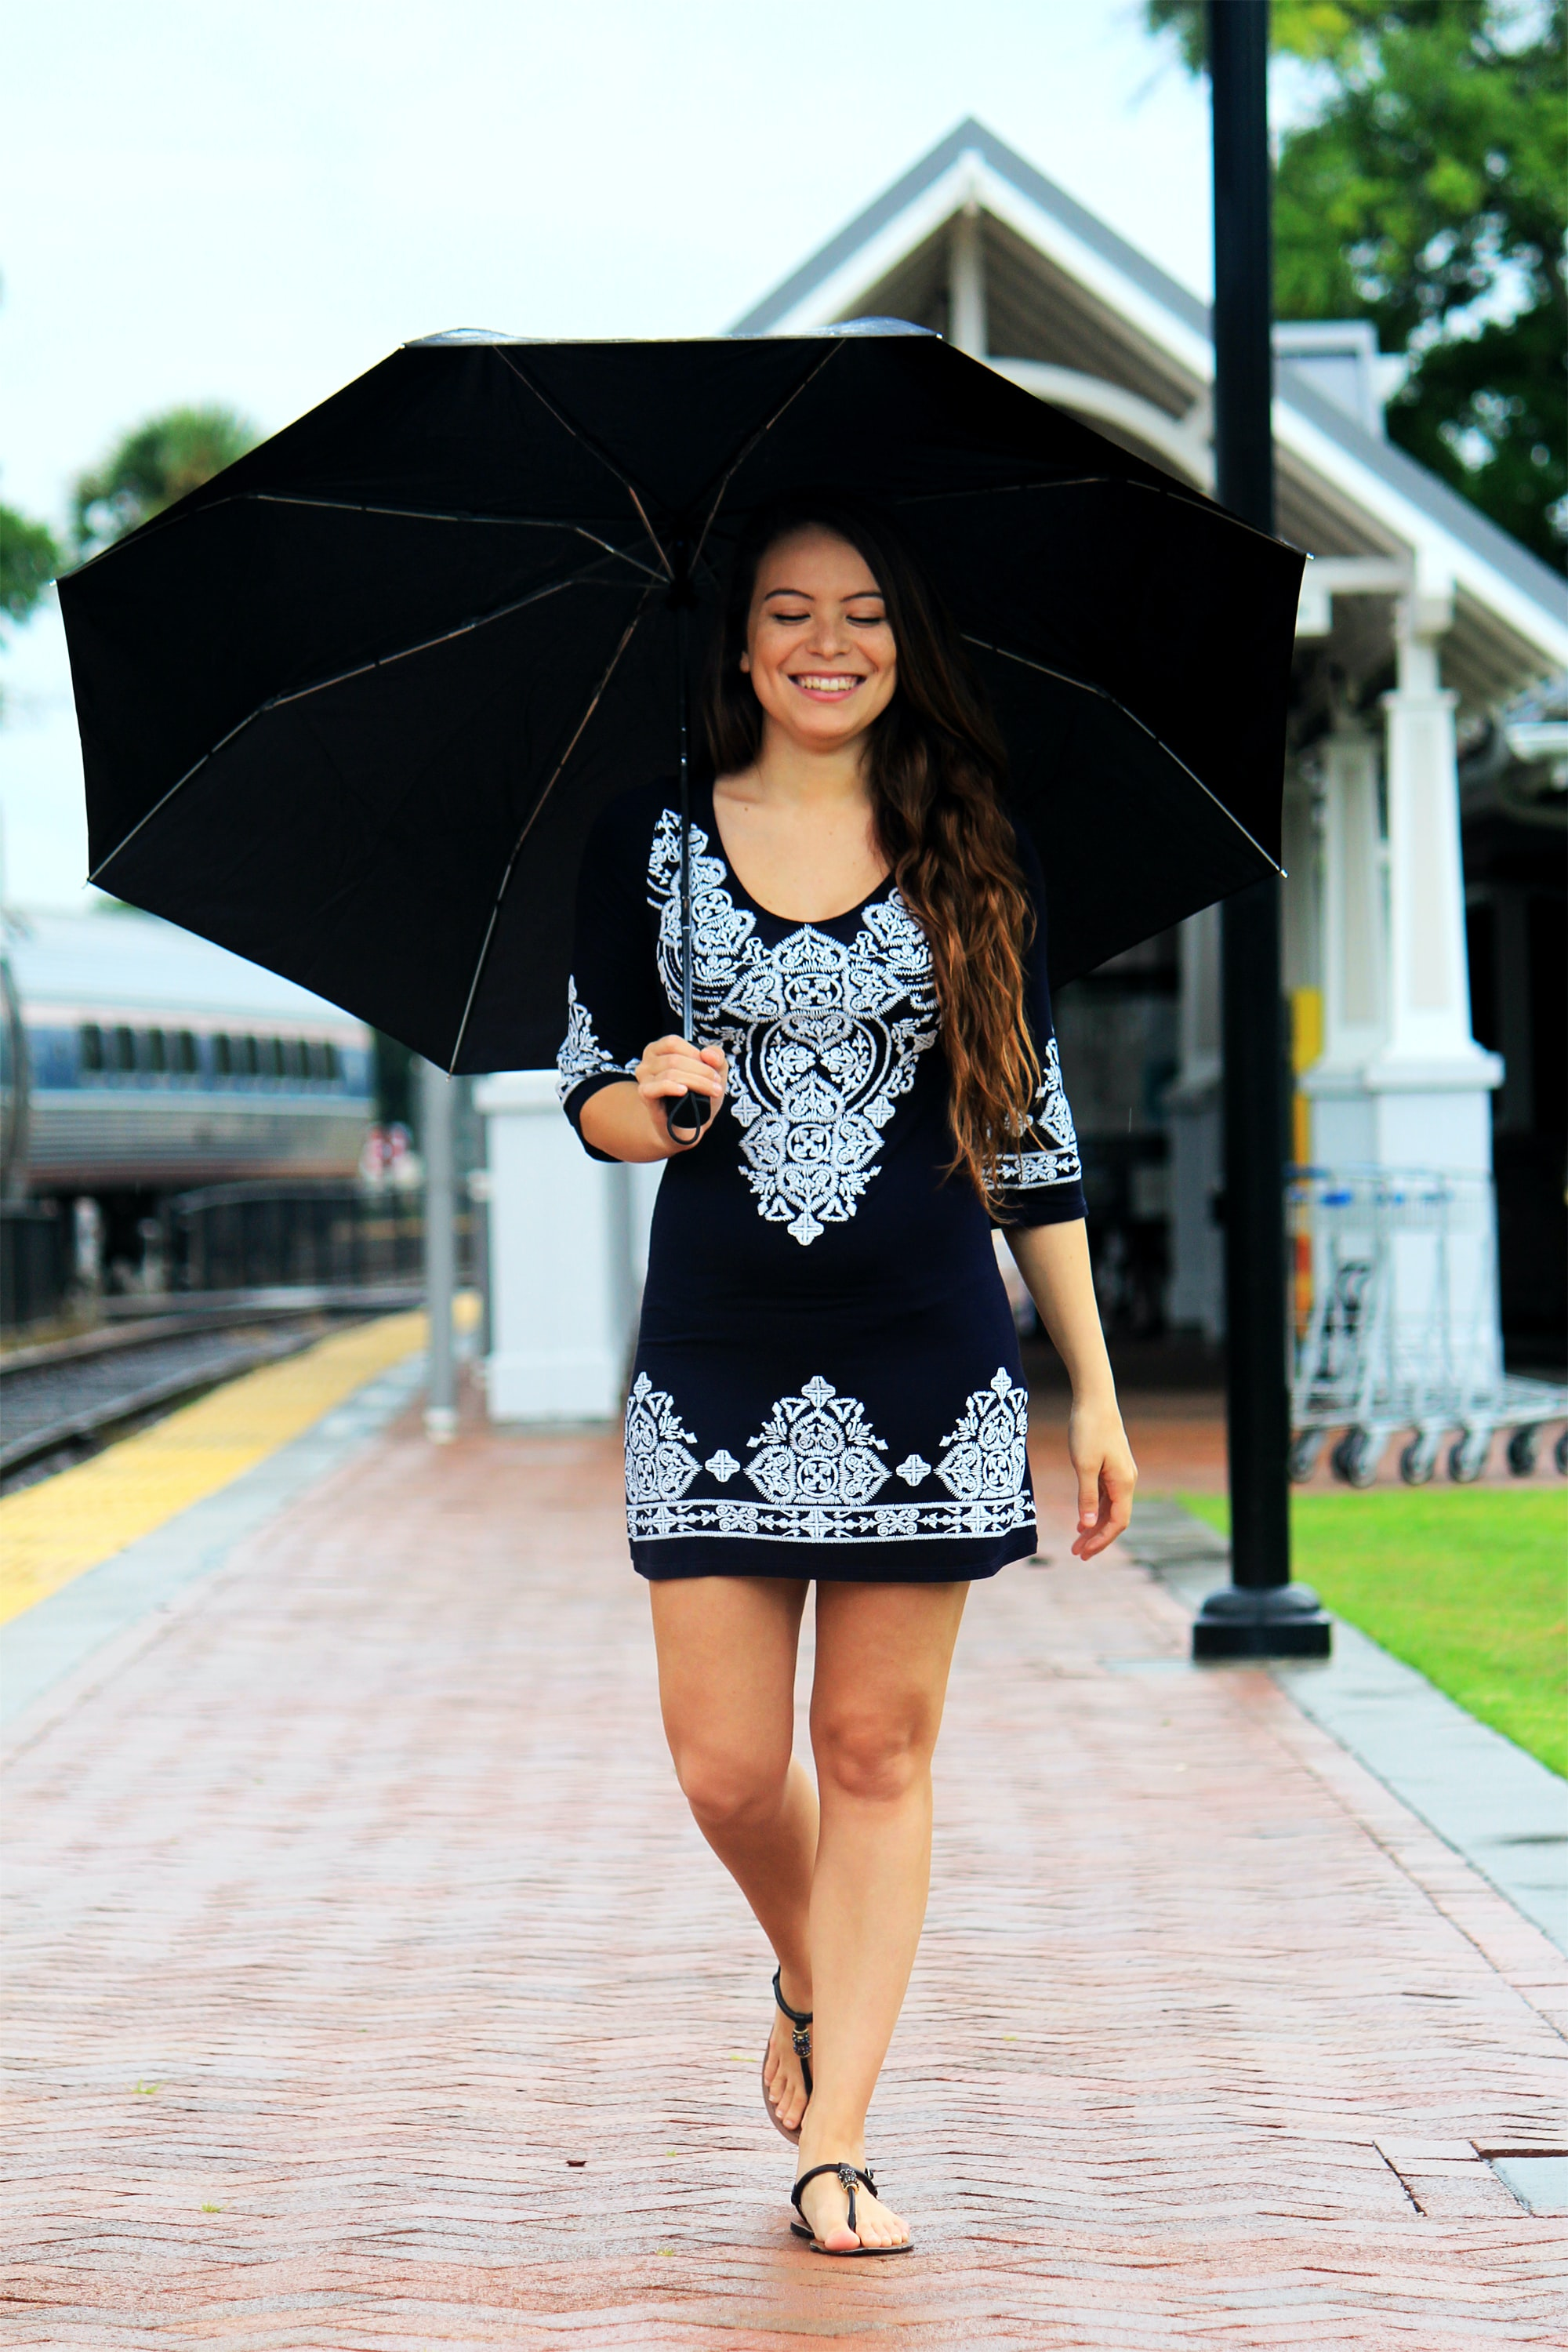 woman walking on brown pathway while holding black umbrella